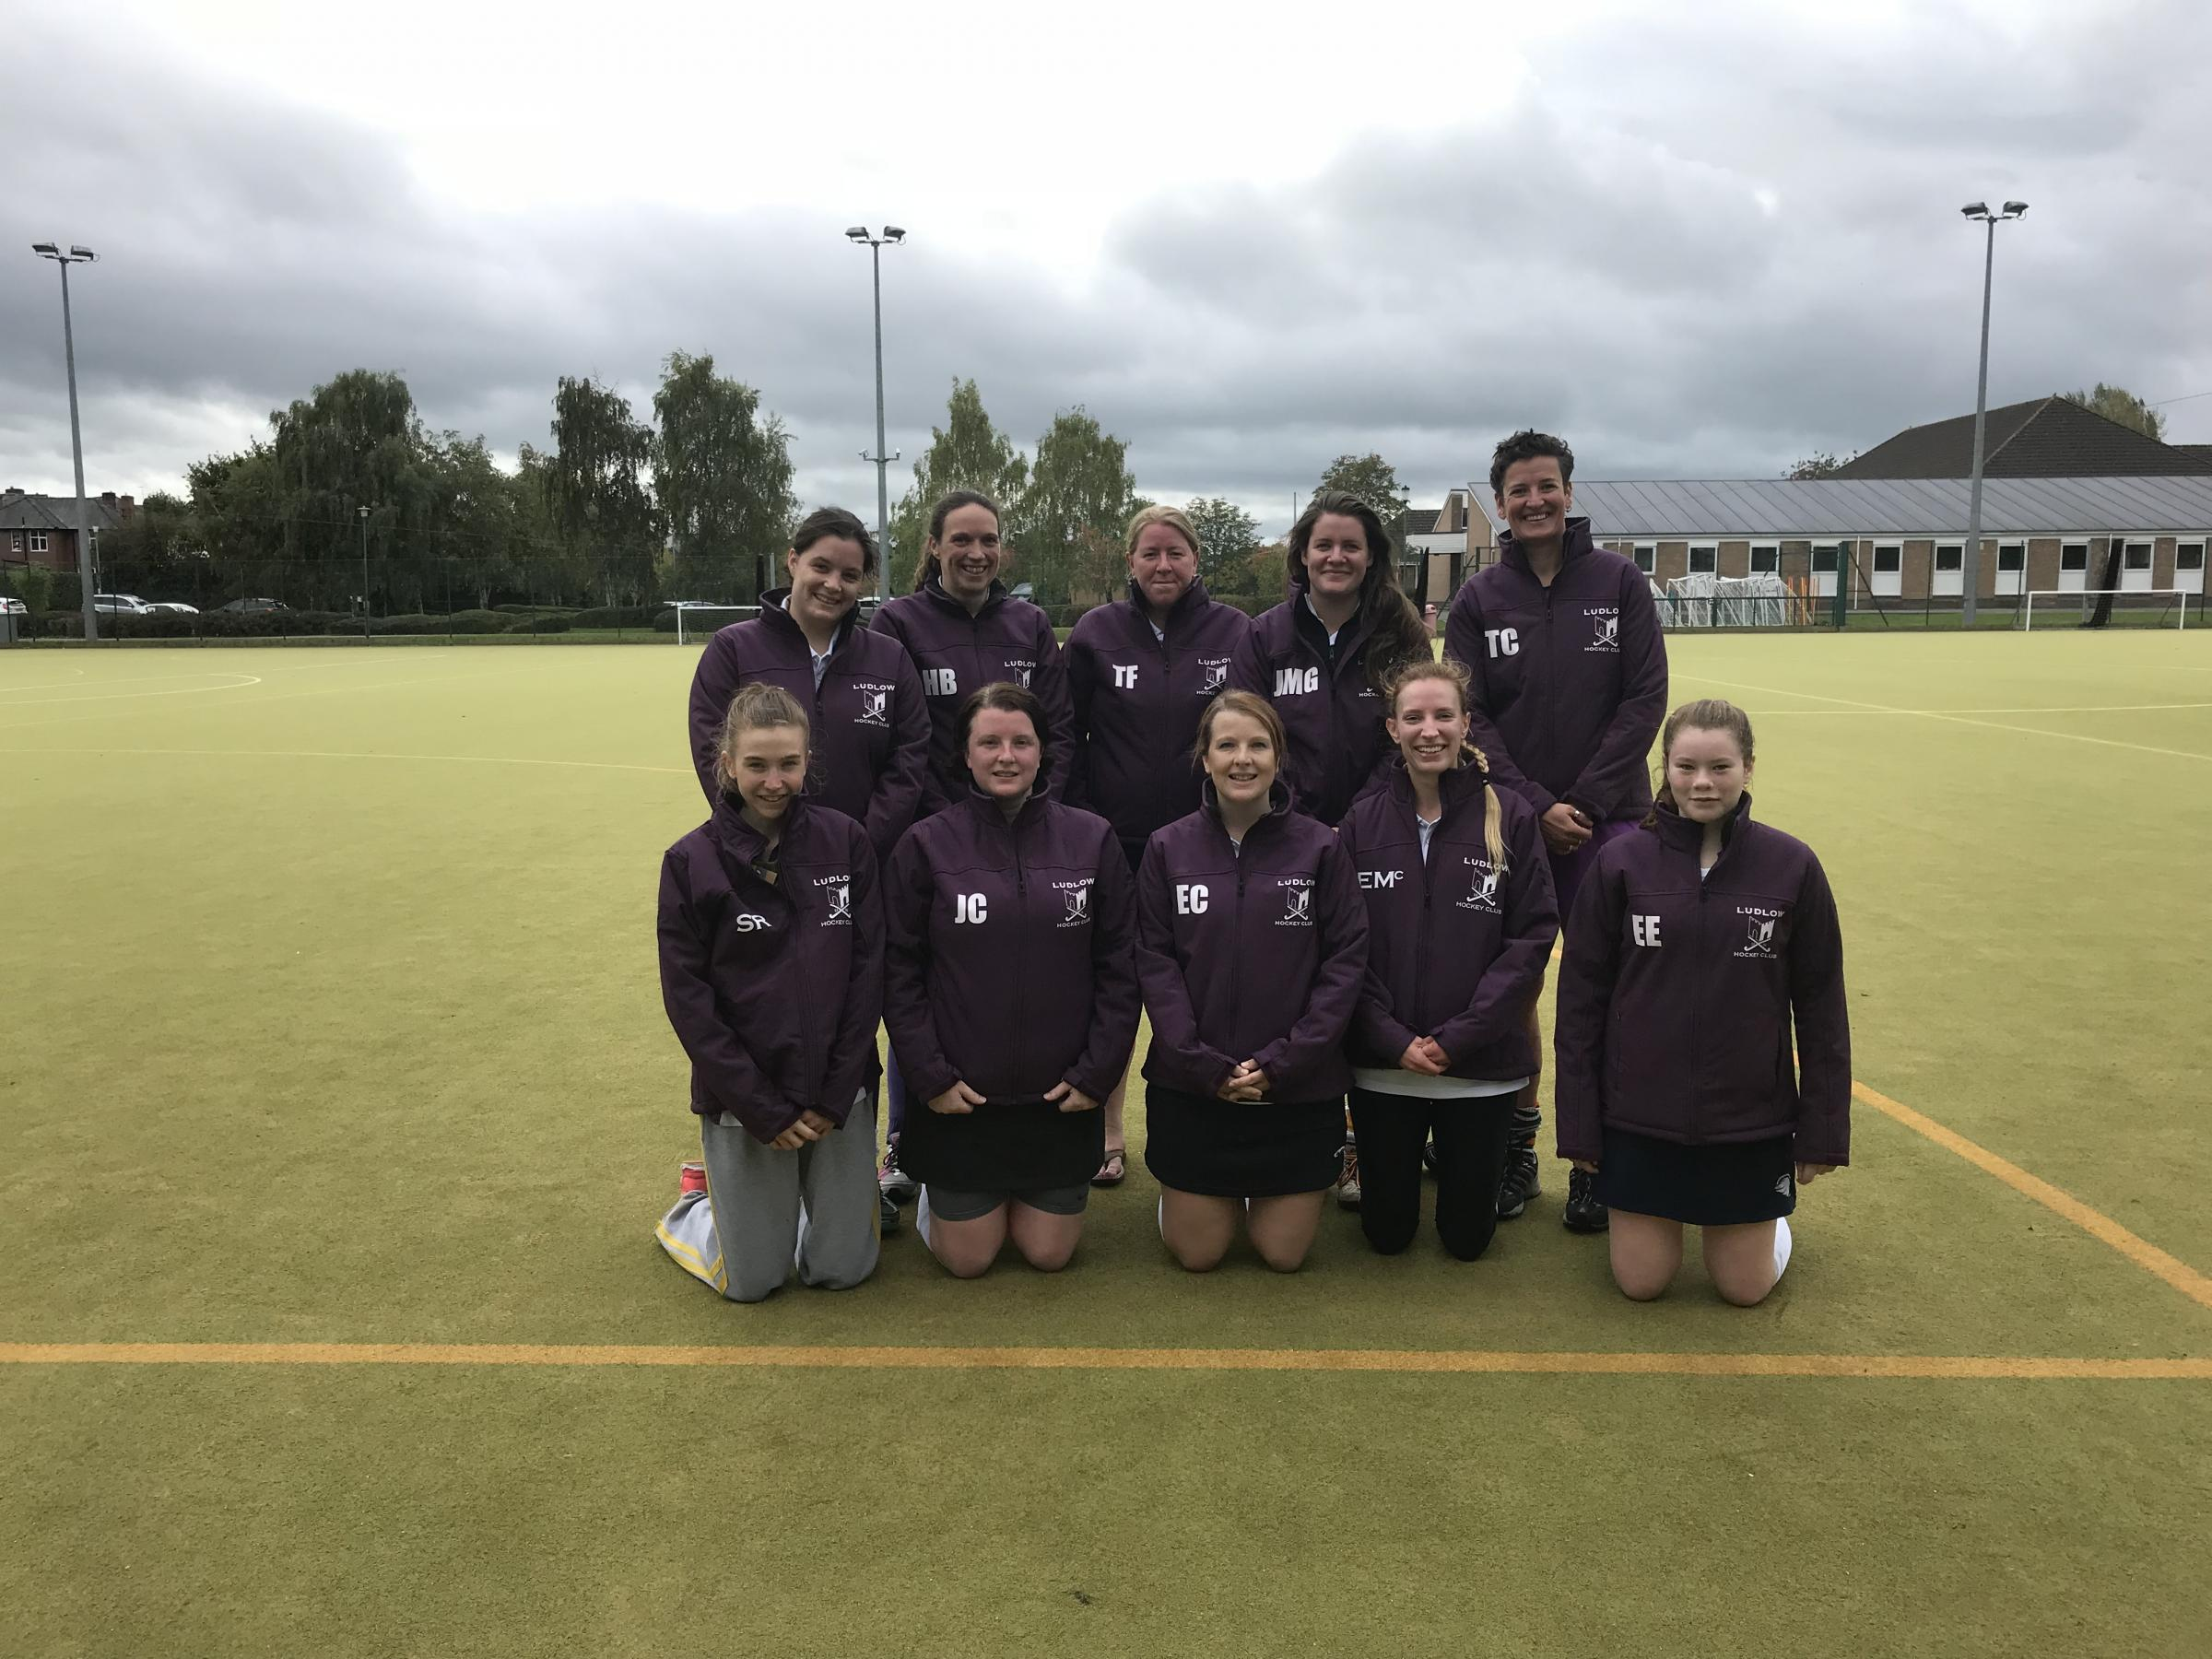 Ludlow Ladies claimed their first win of the season